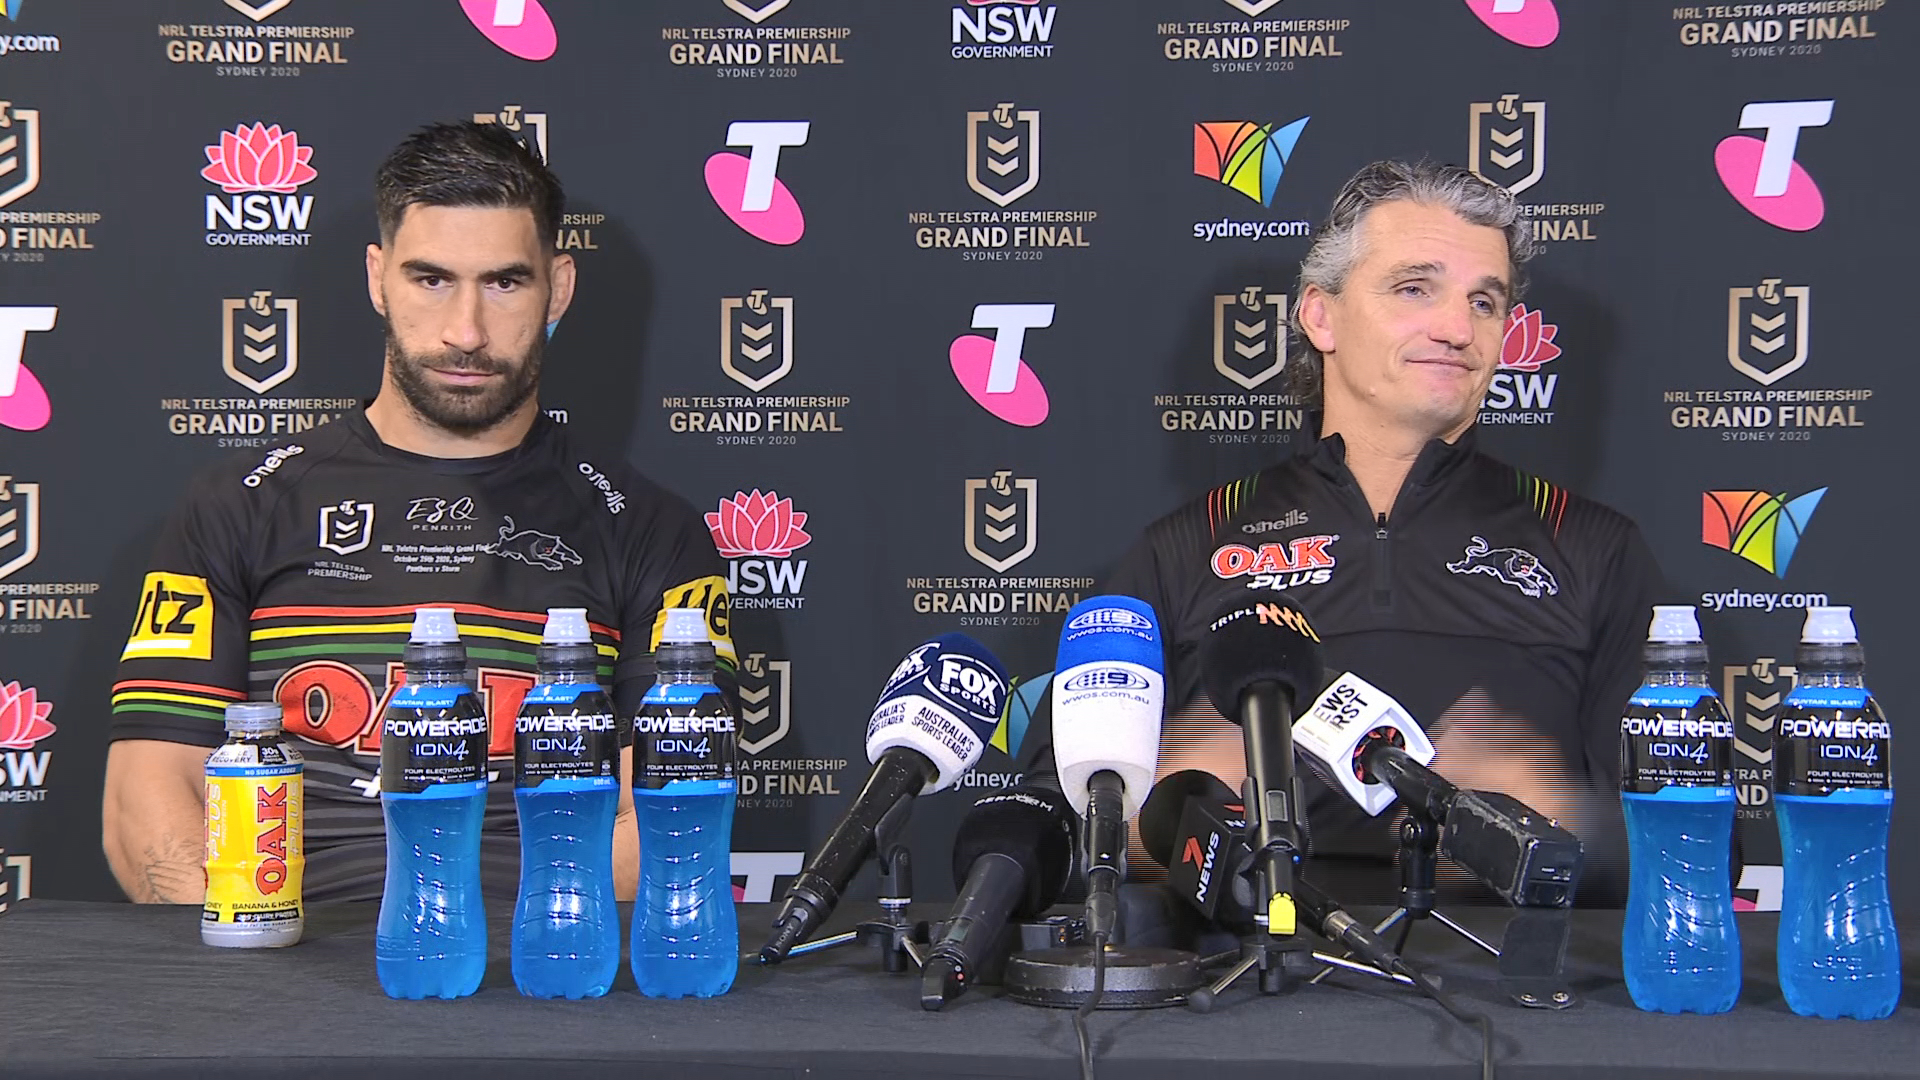 Panthers v Storm Grand Final Presser: Ivan Cleary & James Tamou